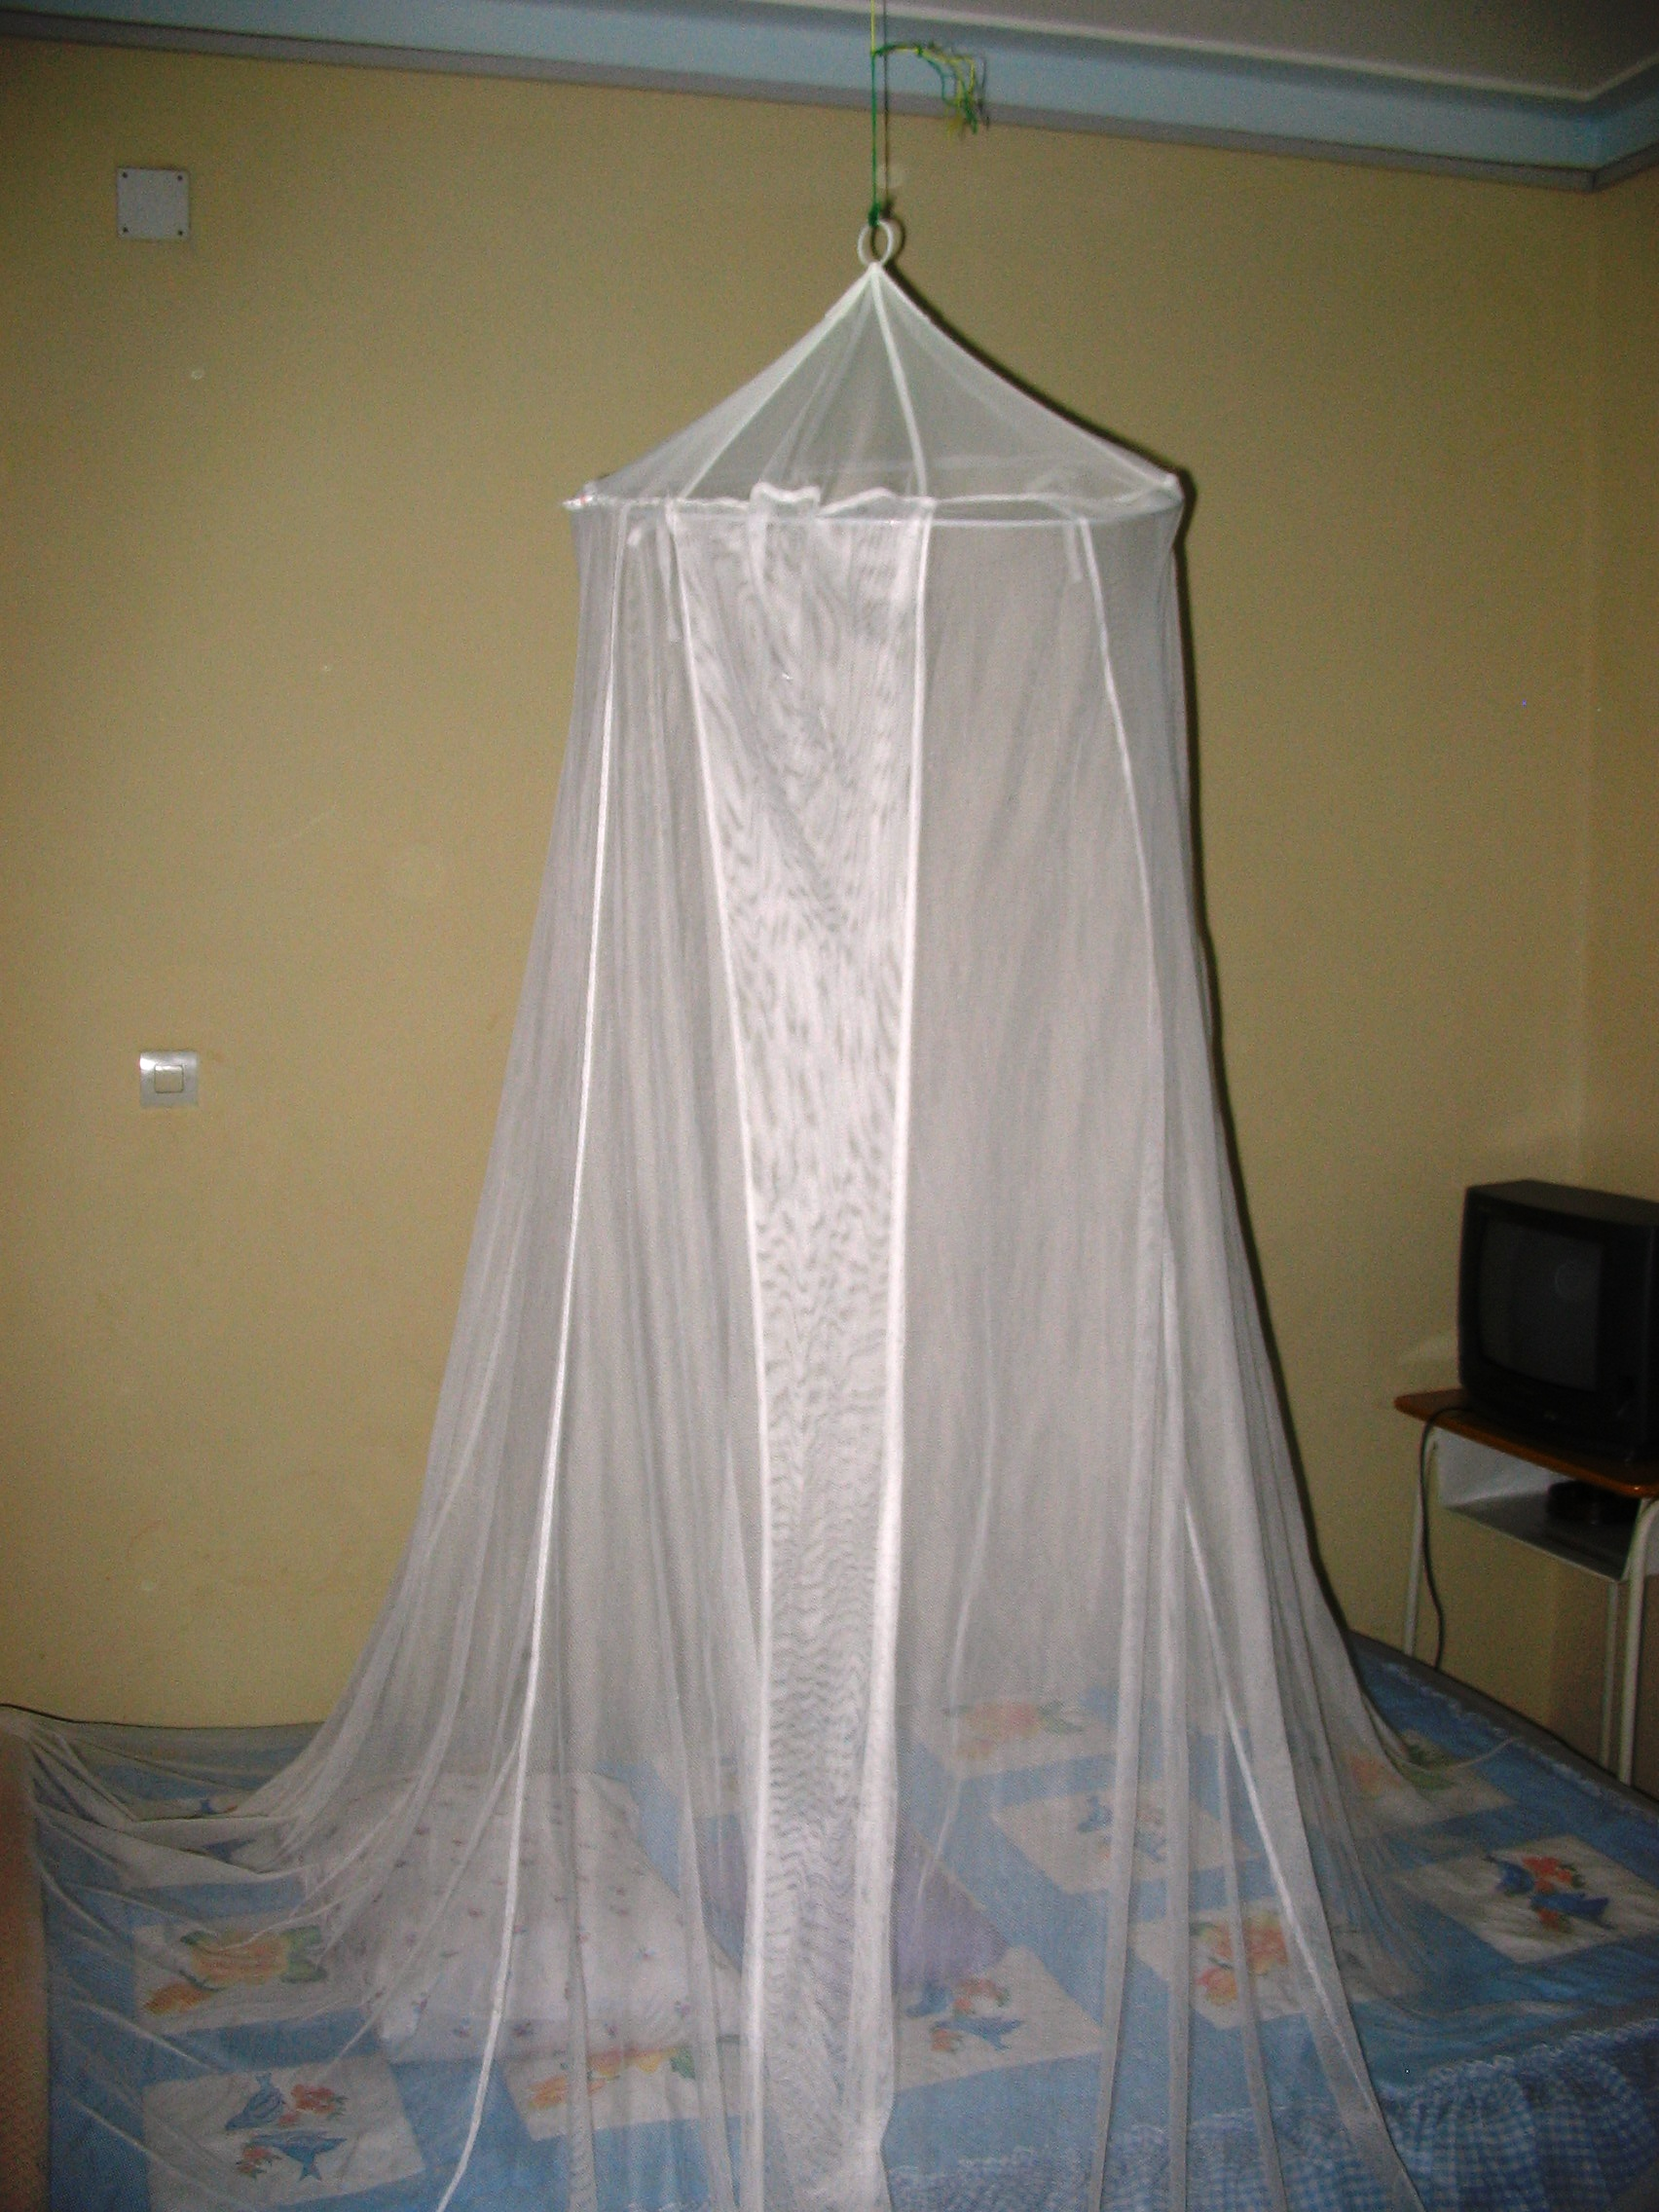 mosquito net over my hotel bed